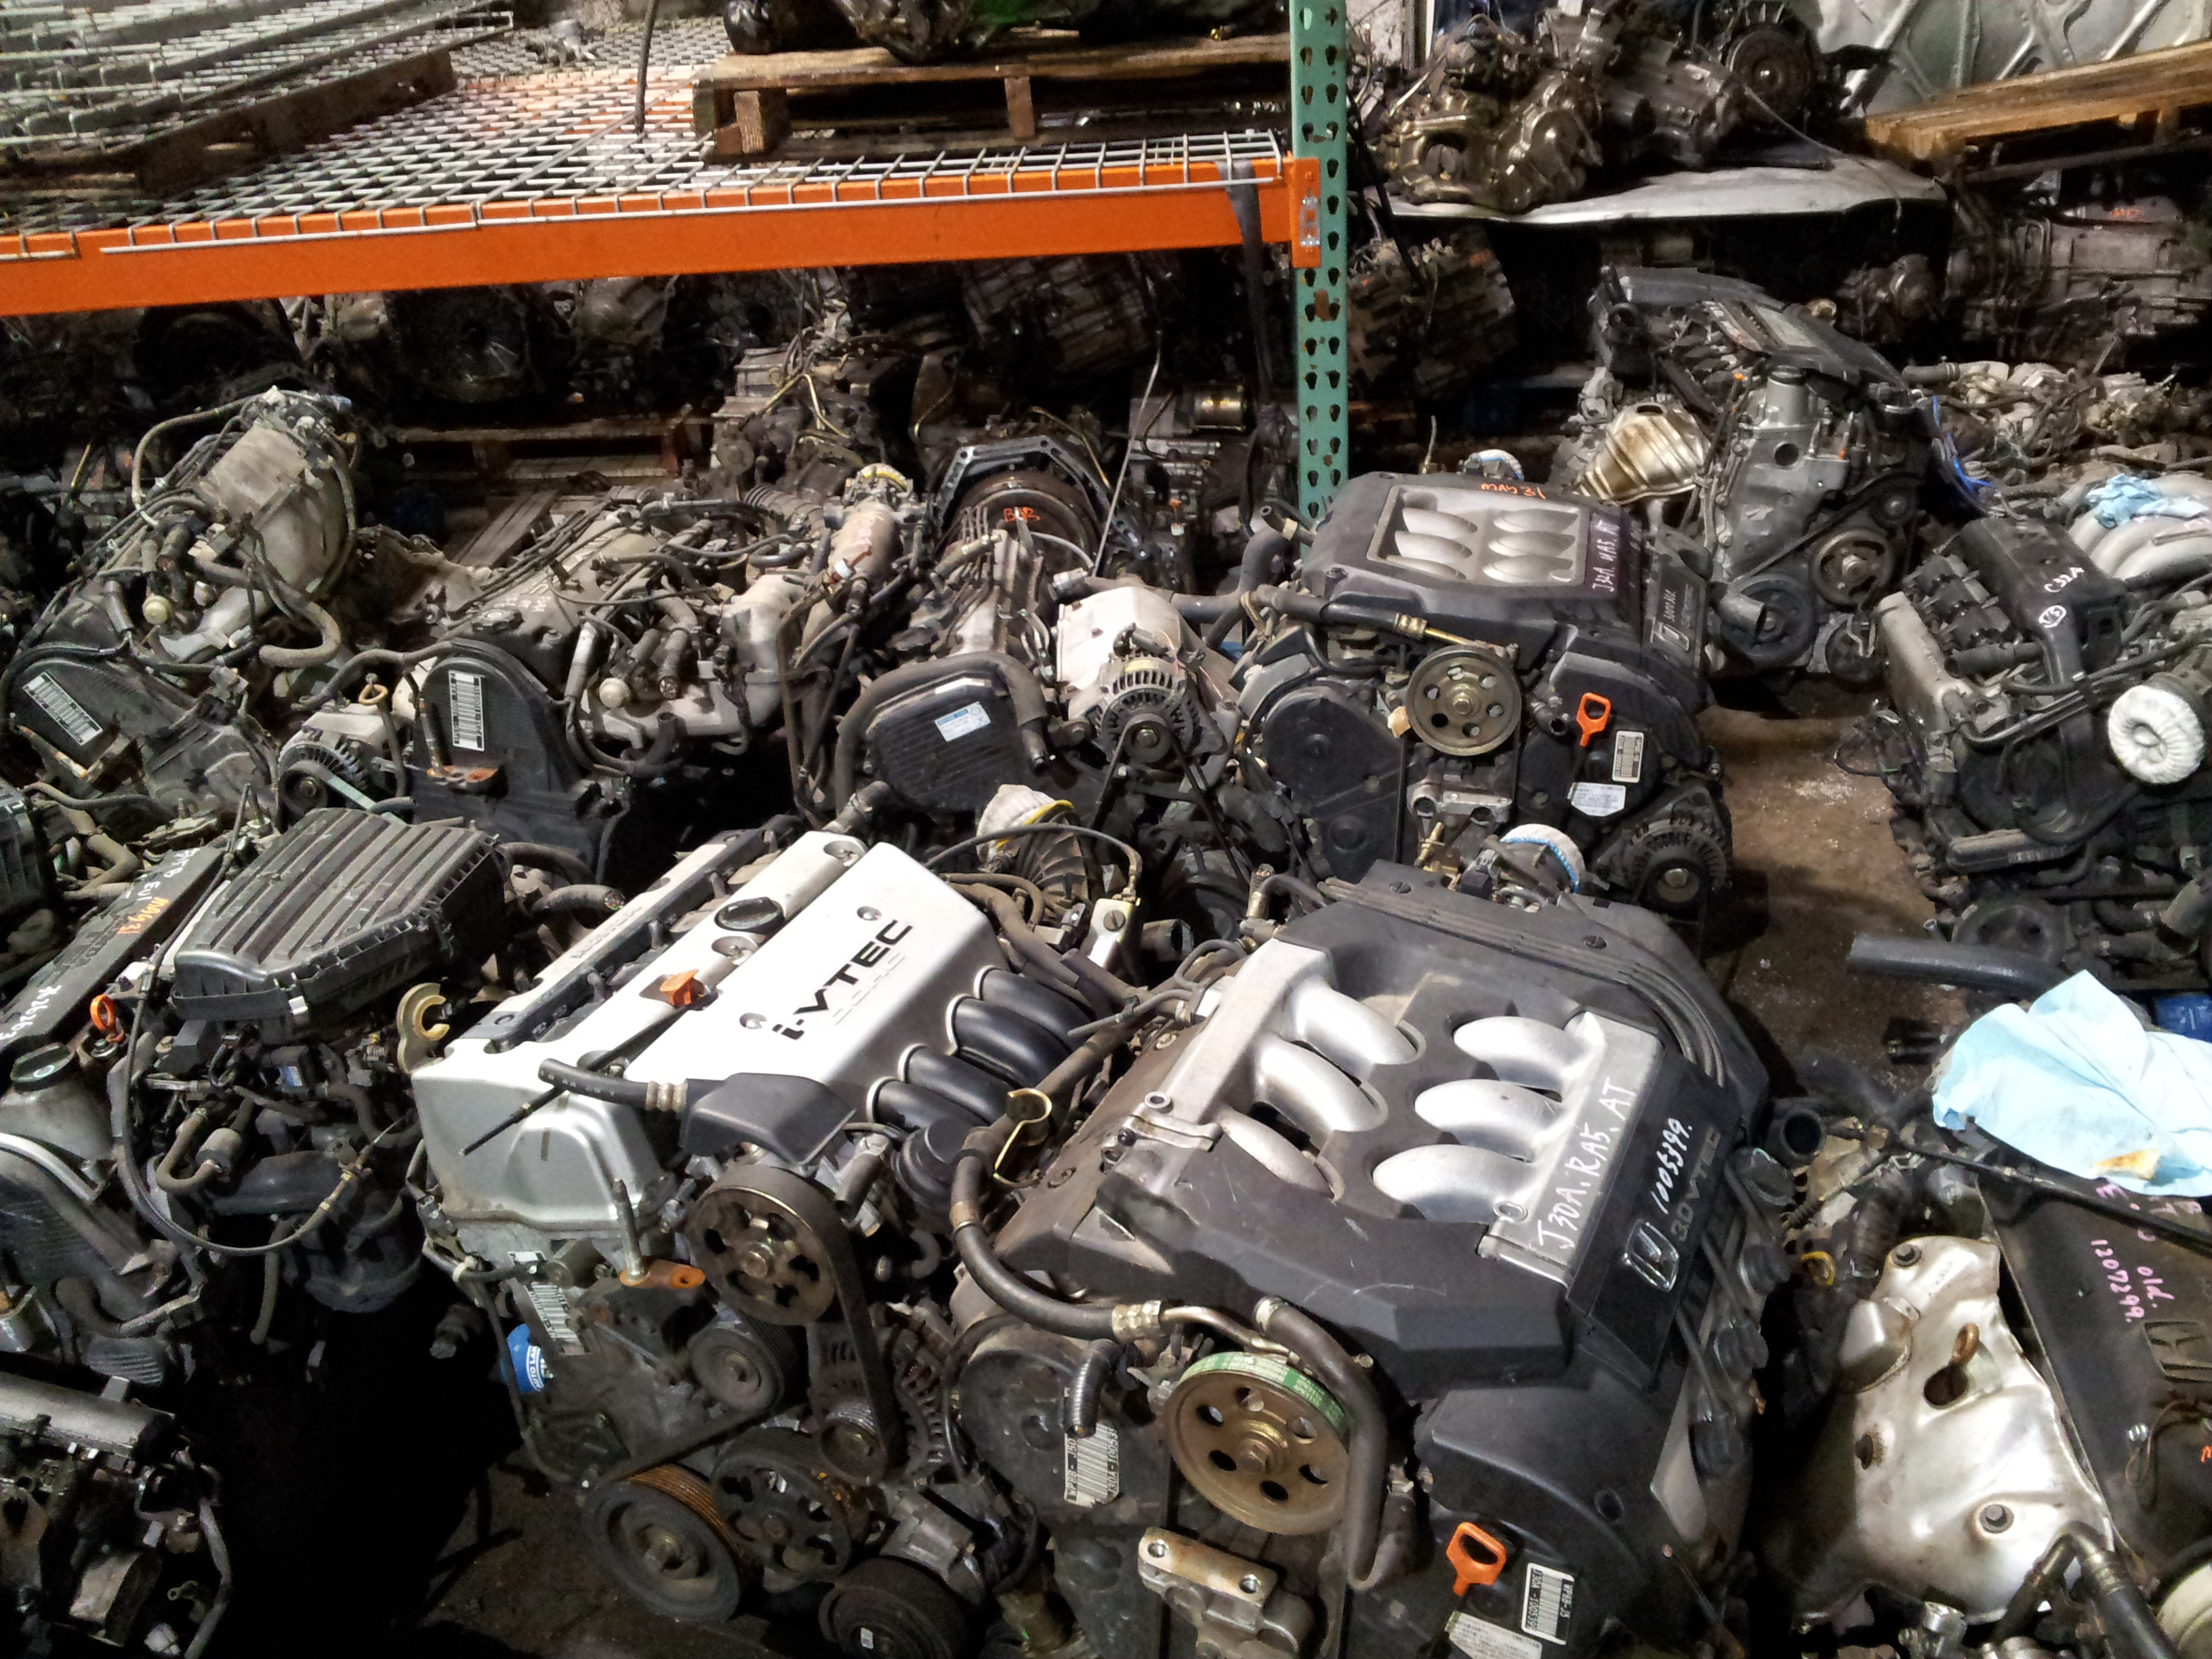 Toyota Camry Engines From Japan Are Low Mileage All Jdm